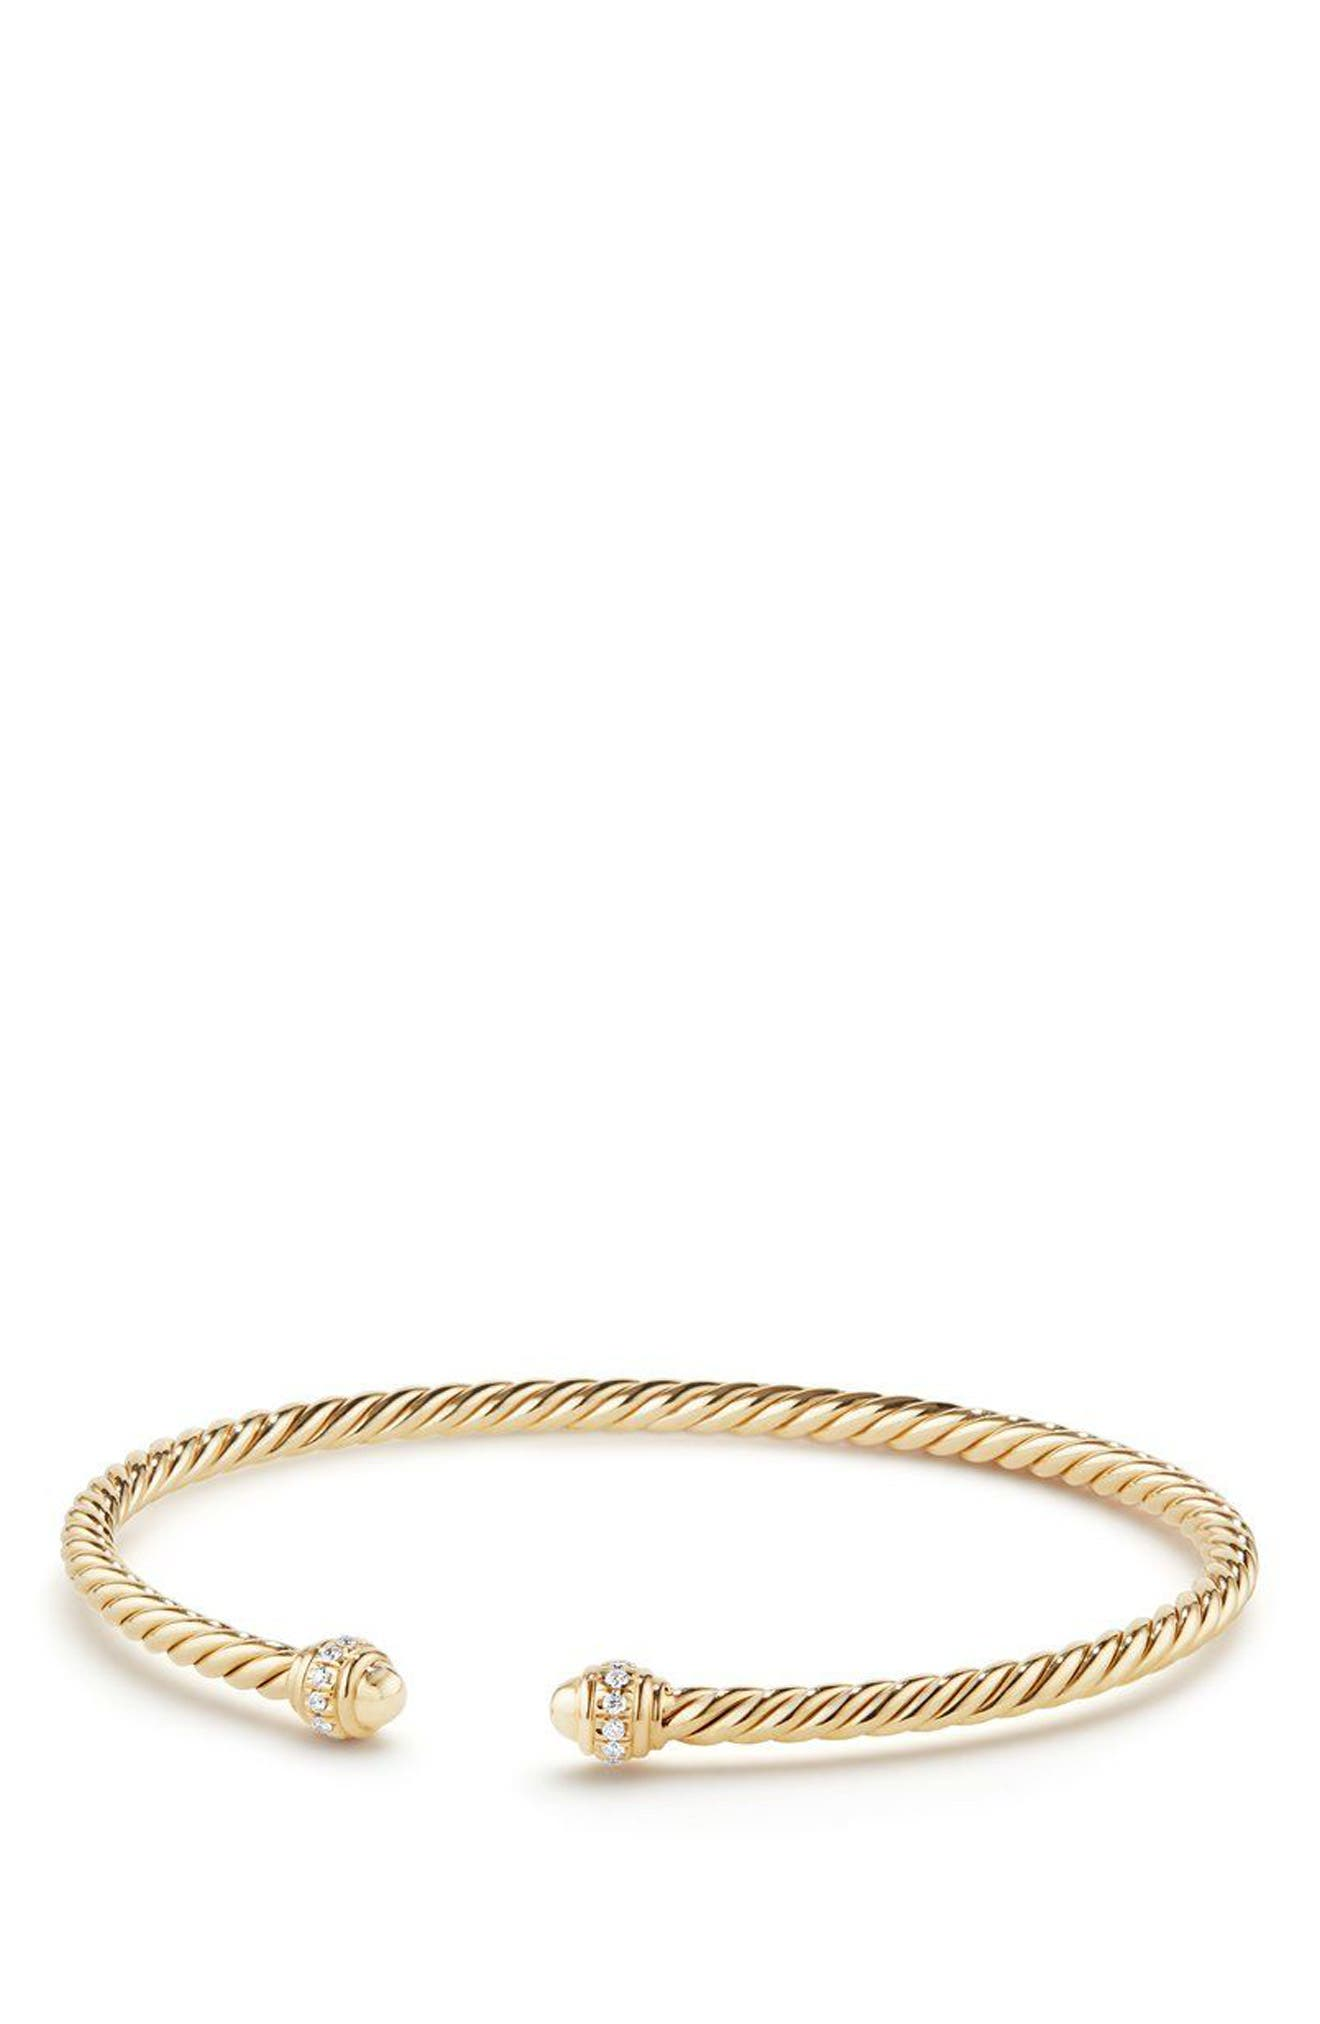 Cable Spira Bracelet in 18K Gold with Diamonds, 3mm,                             Main thumbnail 1, color,                             GOLD/ DIAMOND